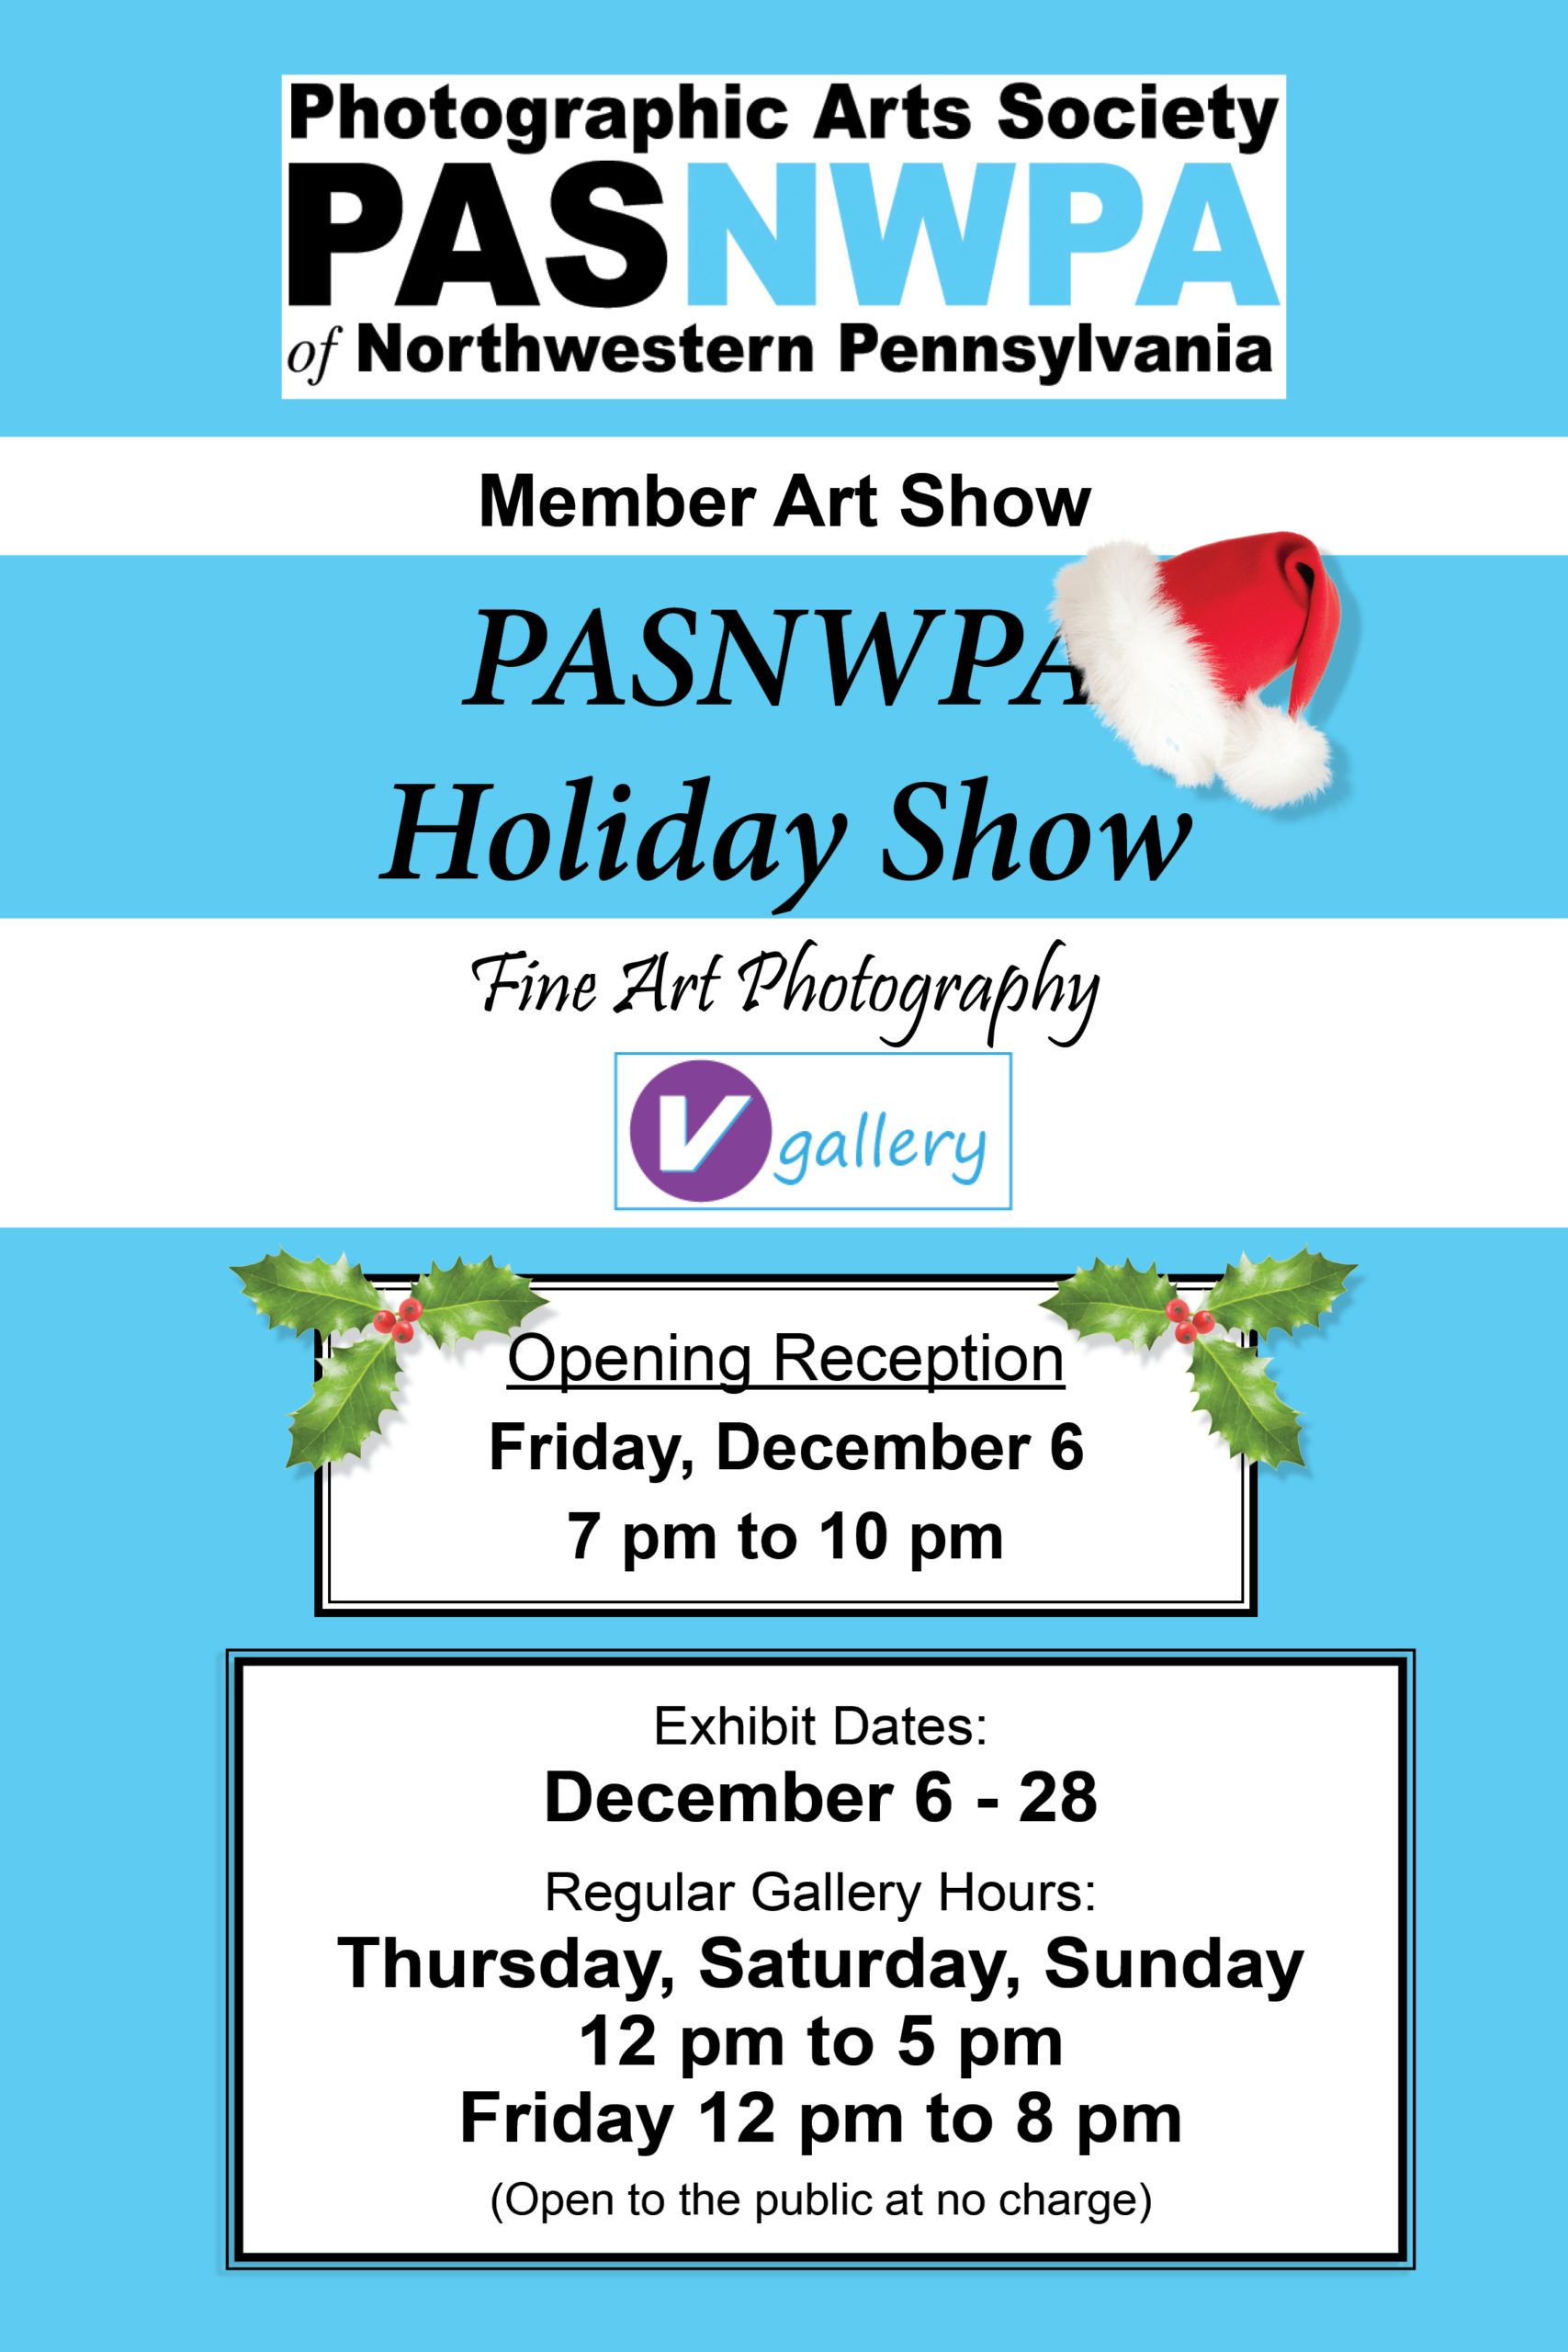 V Gallery Holiday Show 2019